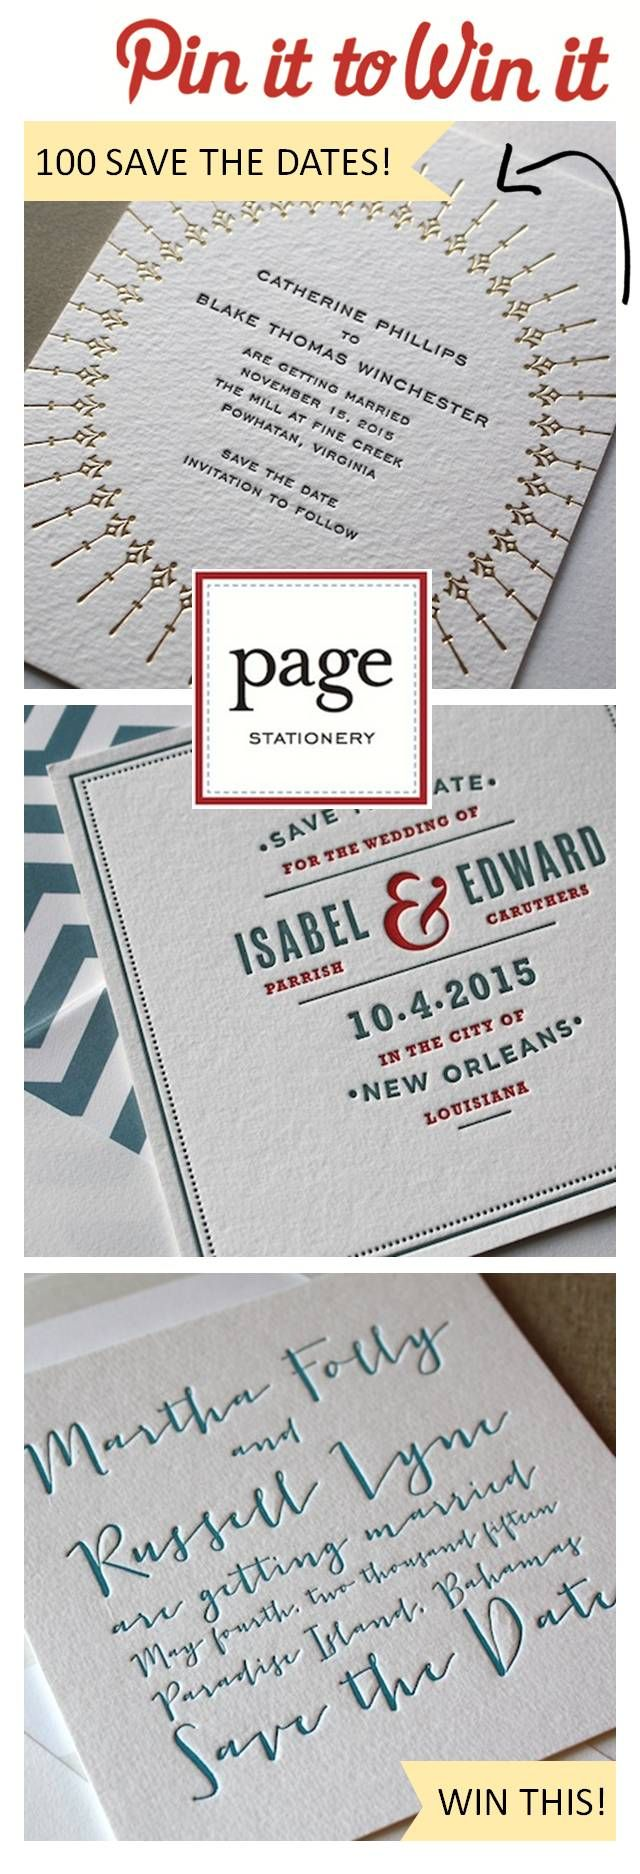 Win 100 Save the Dates from Page Stationery! Pin it to Win it! http://www.theperfectpalette.com/2012/11/sponsored-post-giveaway-page-stationery.html#